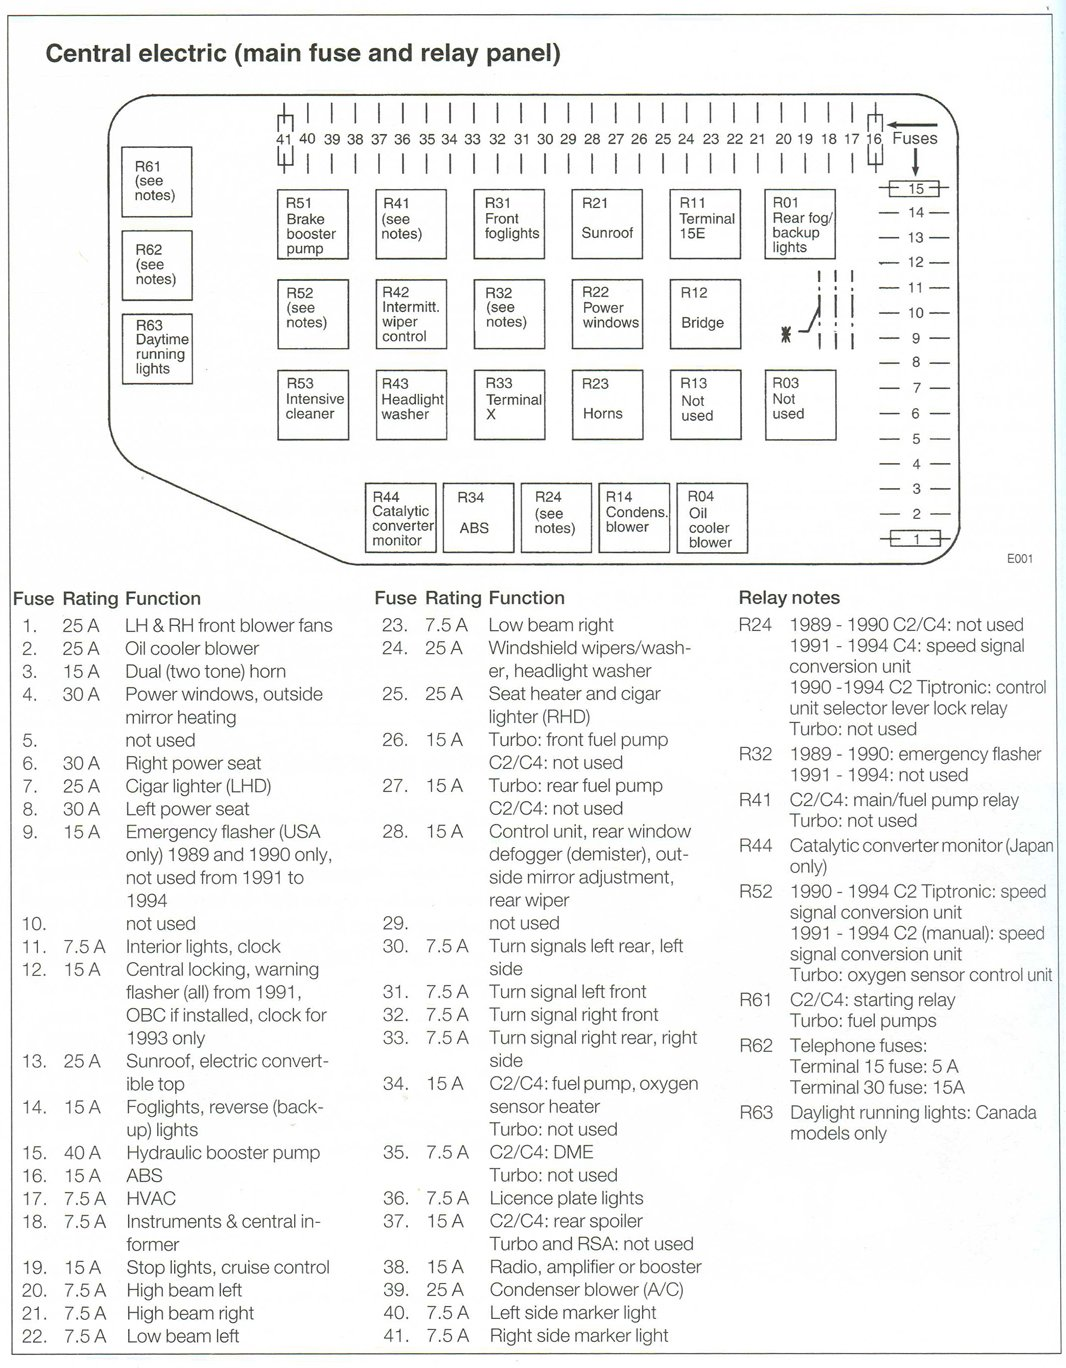 porsche 964 fuse box - wiring diagram way-usage-a -  way-usage-a.agriturismoduemadonne.it  agriturismo due madonne